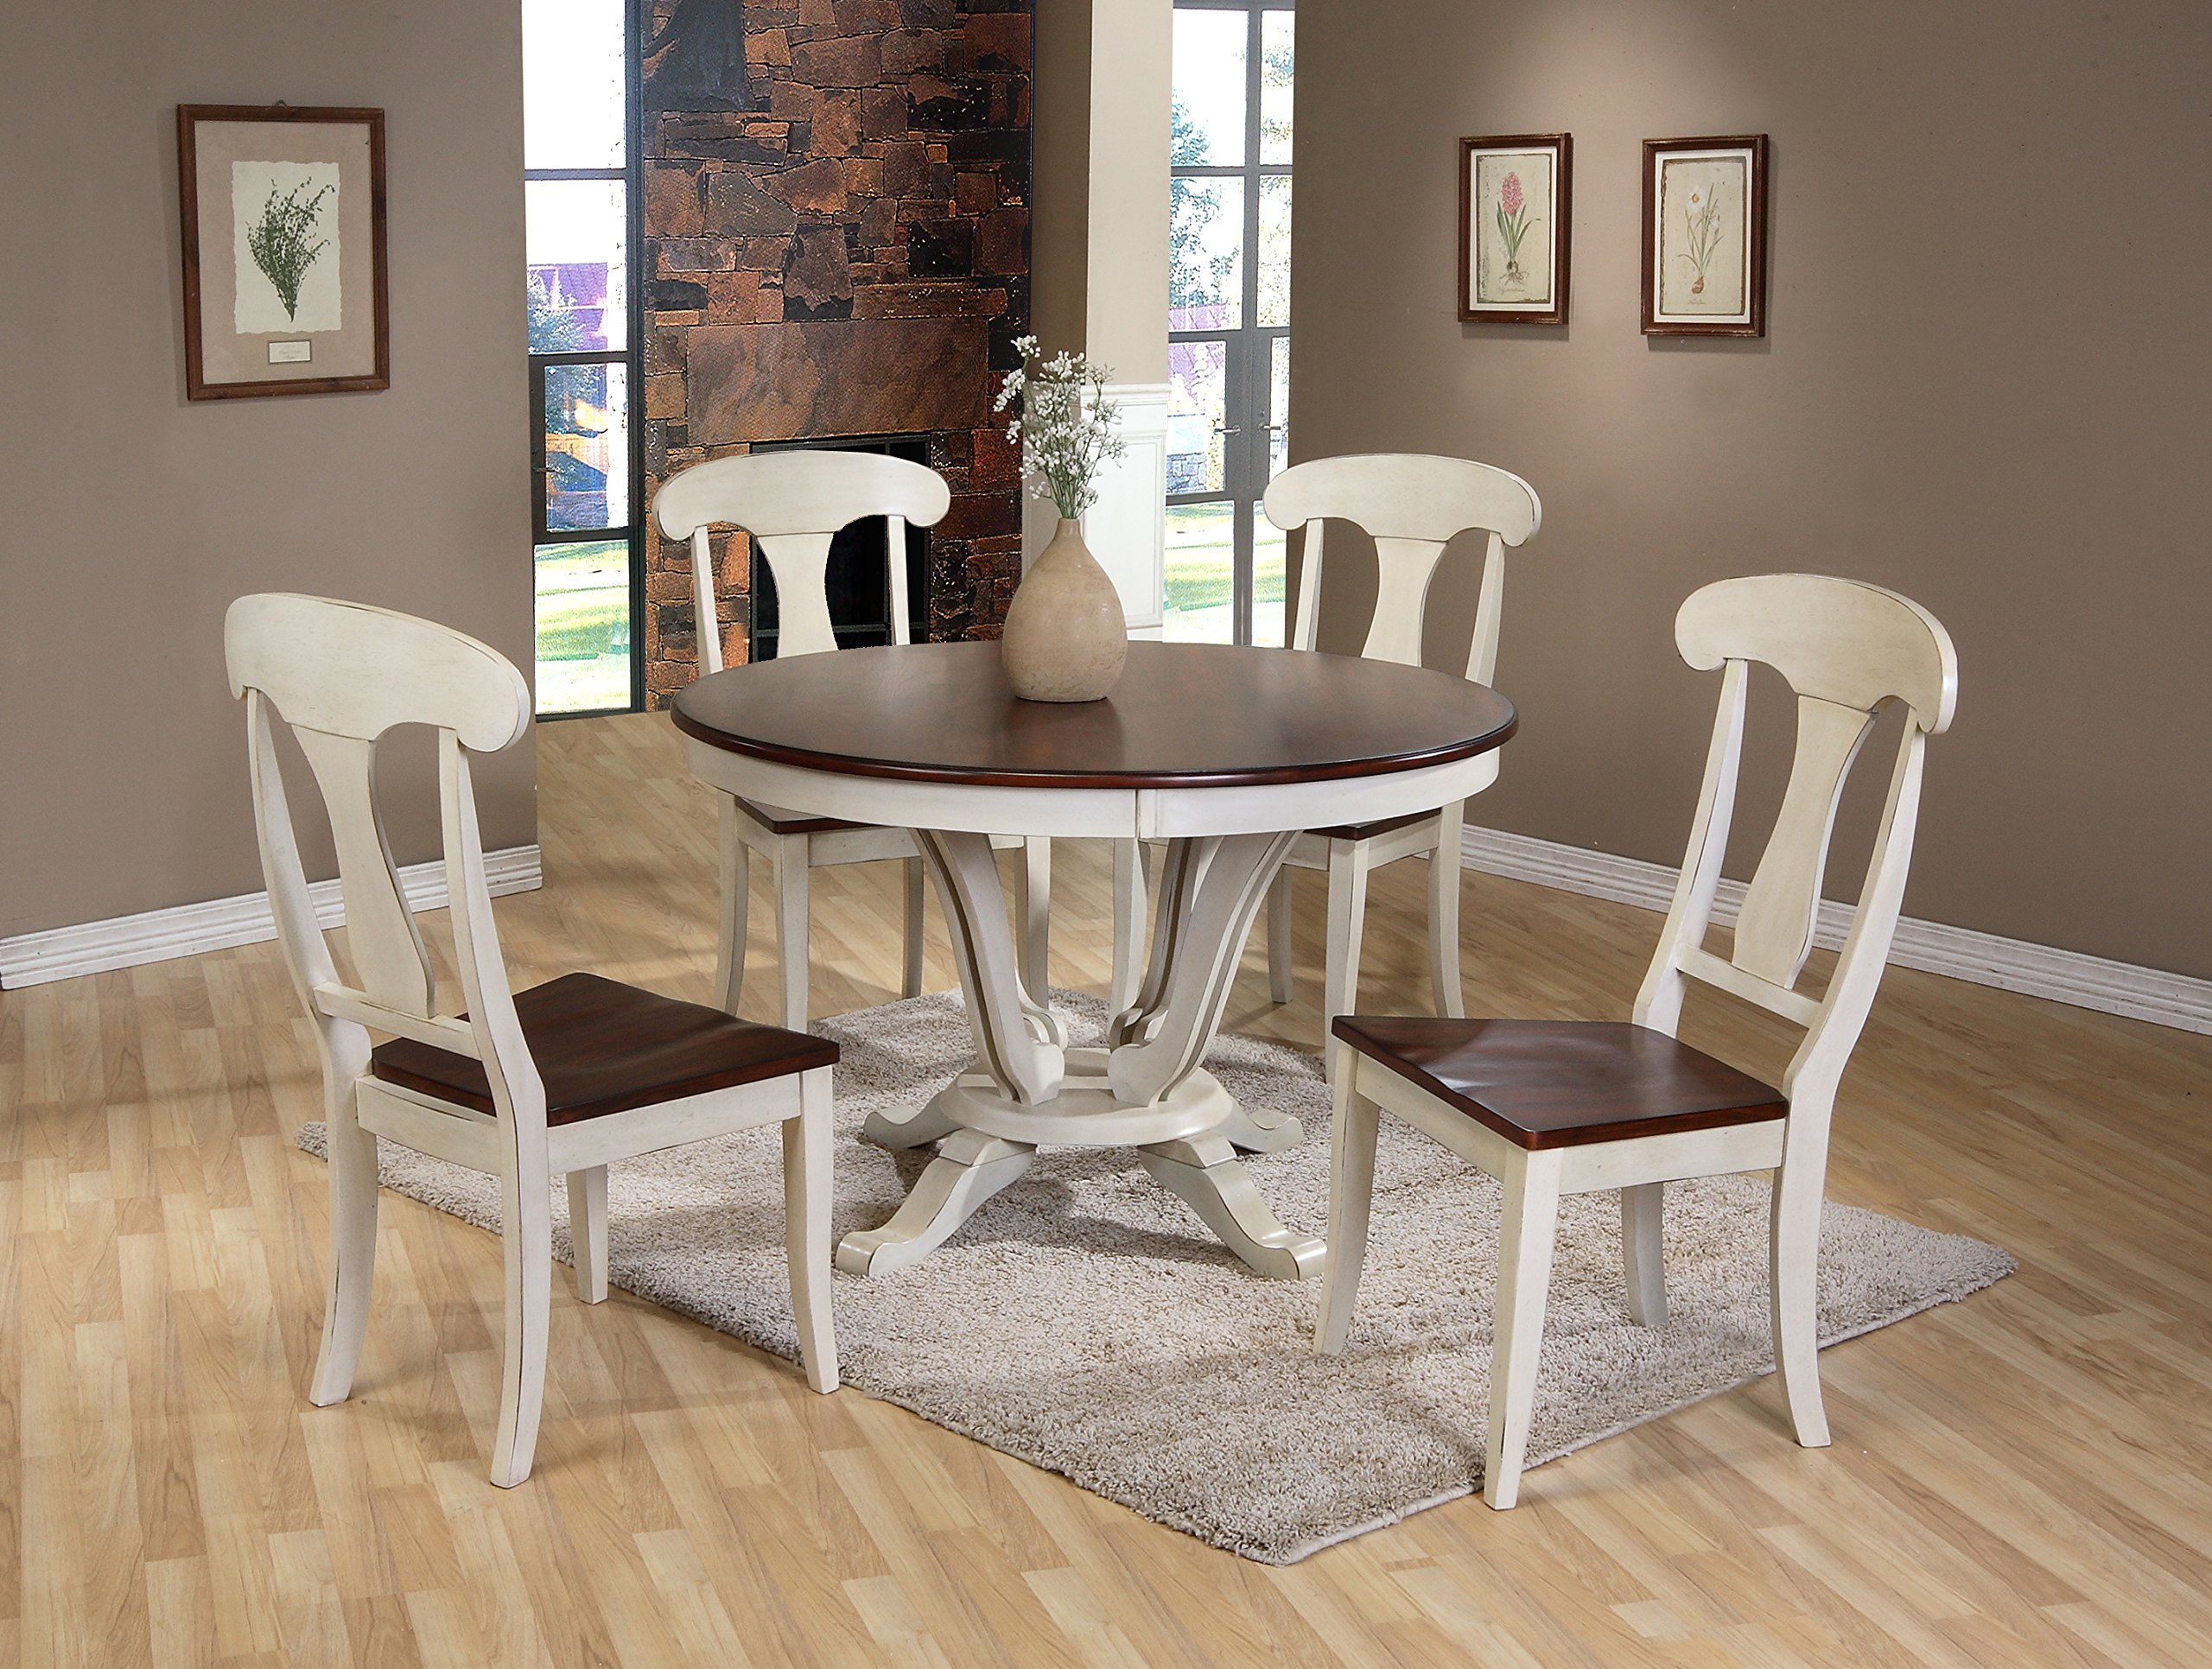 48 inch dining table 60 inch get quotations baxton studio napoleon chic country cottage antique oak wood and distressed white 5piece dining cheap 48 inch table top find top deals on line at